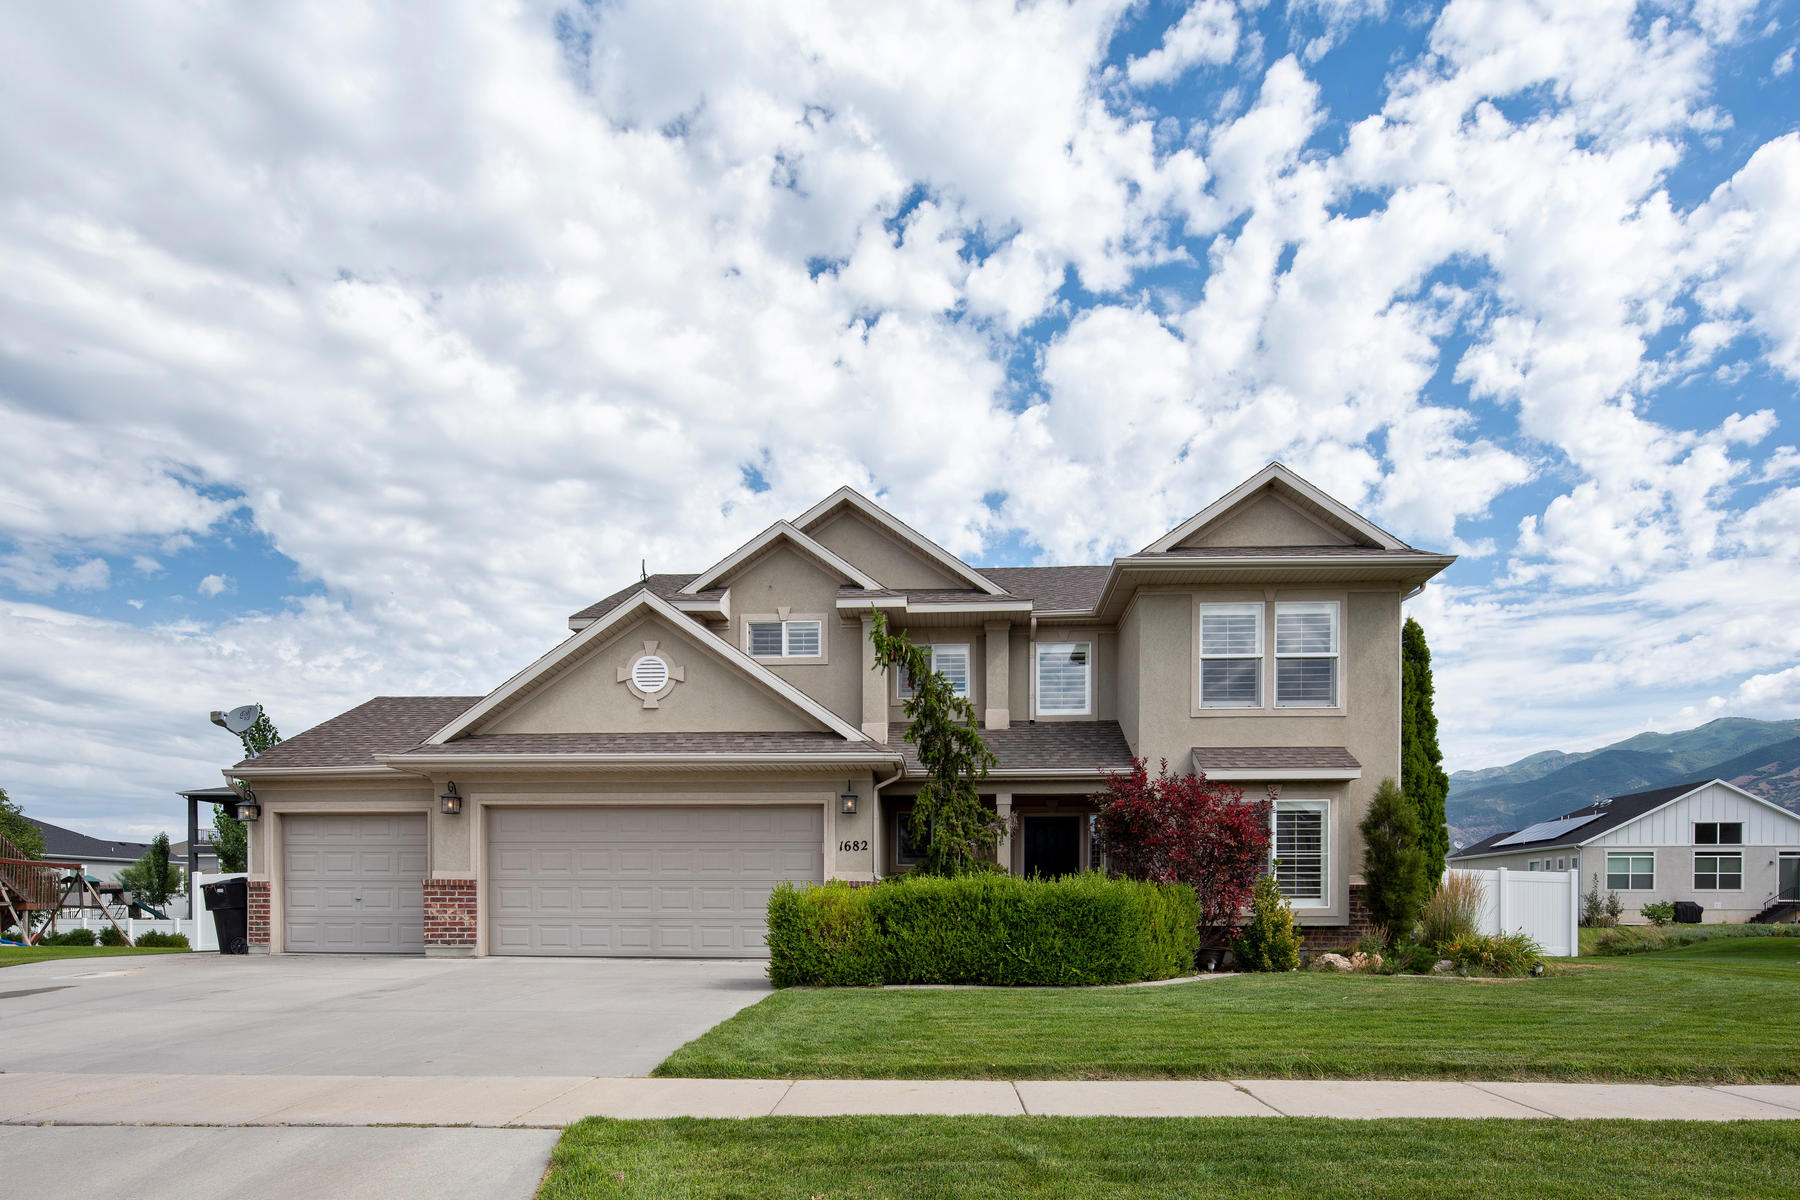 Single Family Homes for Active at Great Curb Appeal in Farmington 1682 Country Bend Rd Farmington, Utah 84025 United States